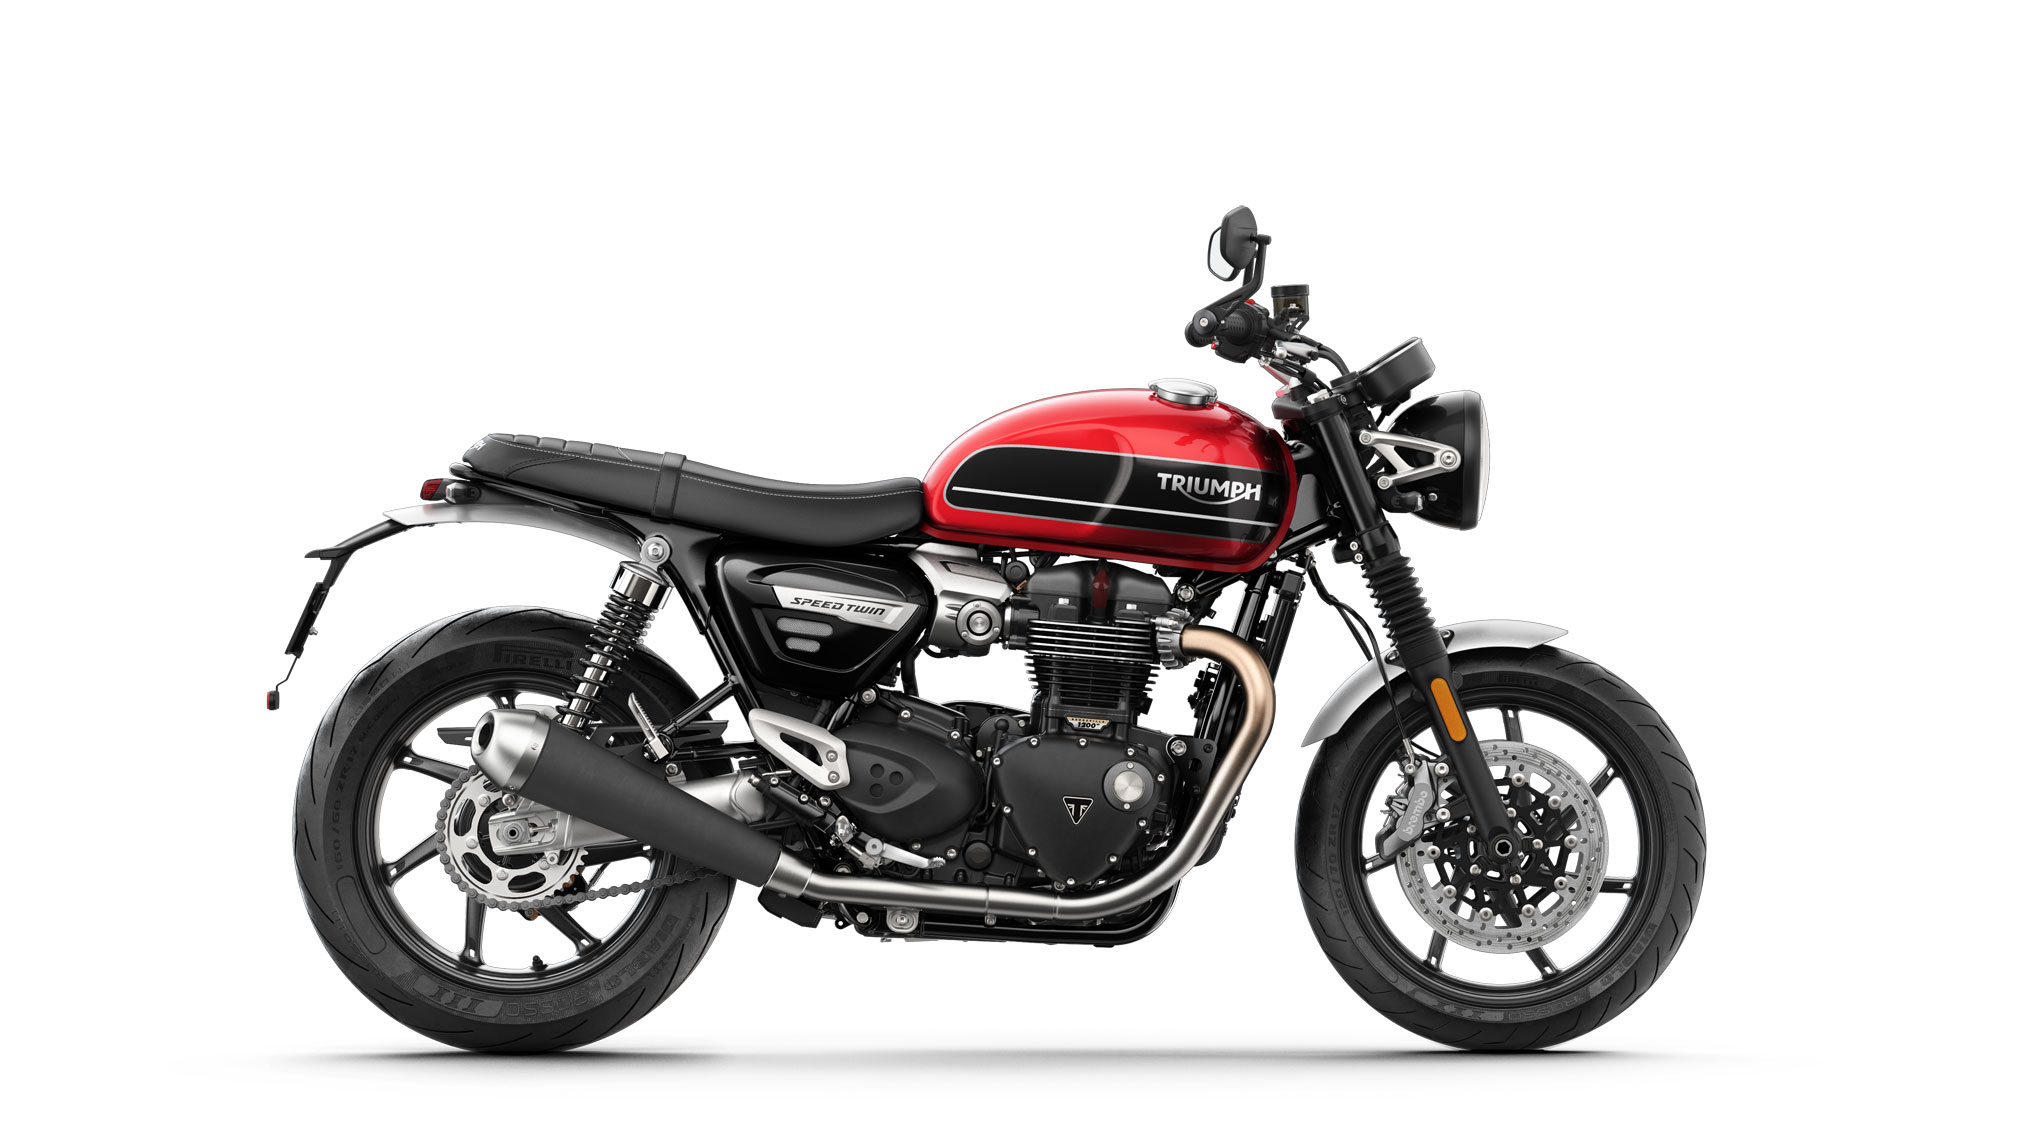 2019 triumph speed twin guide totalmotorcycle. Black Bedroom Furniture Sets. Home Design Ideas